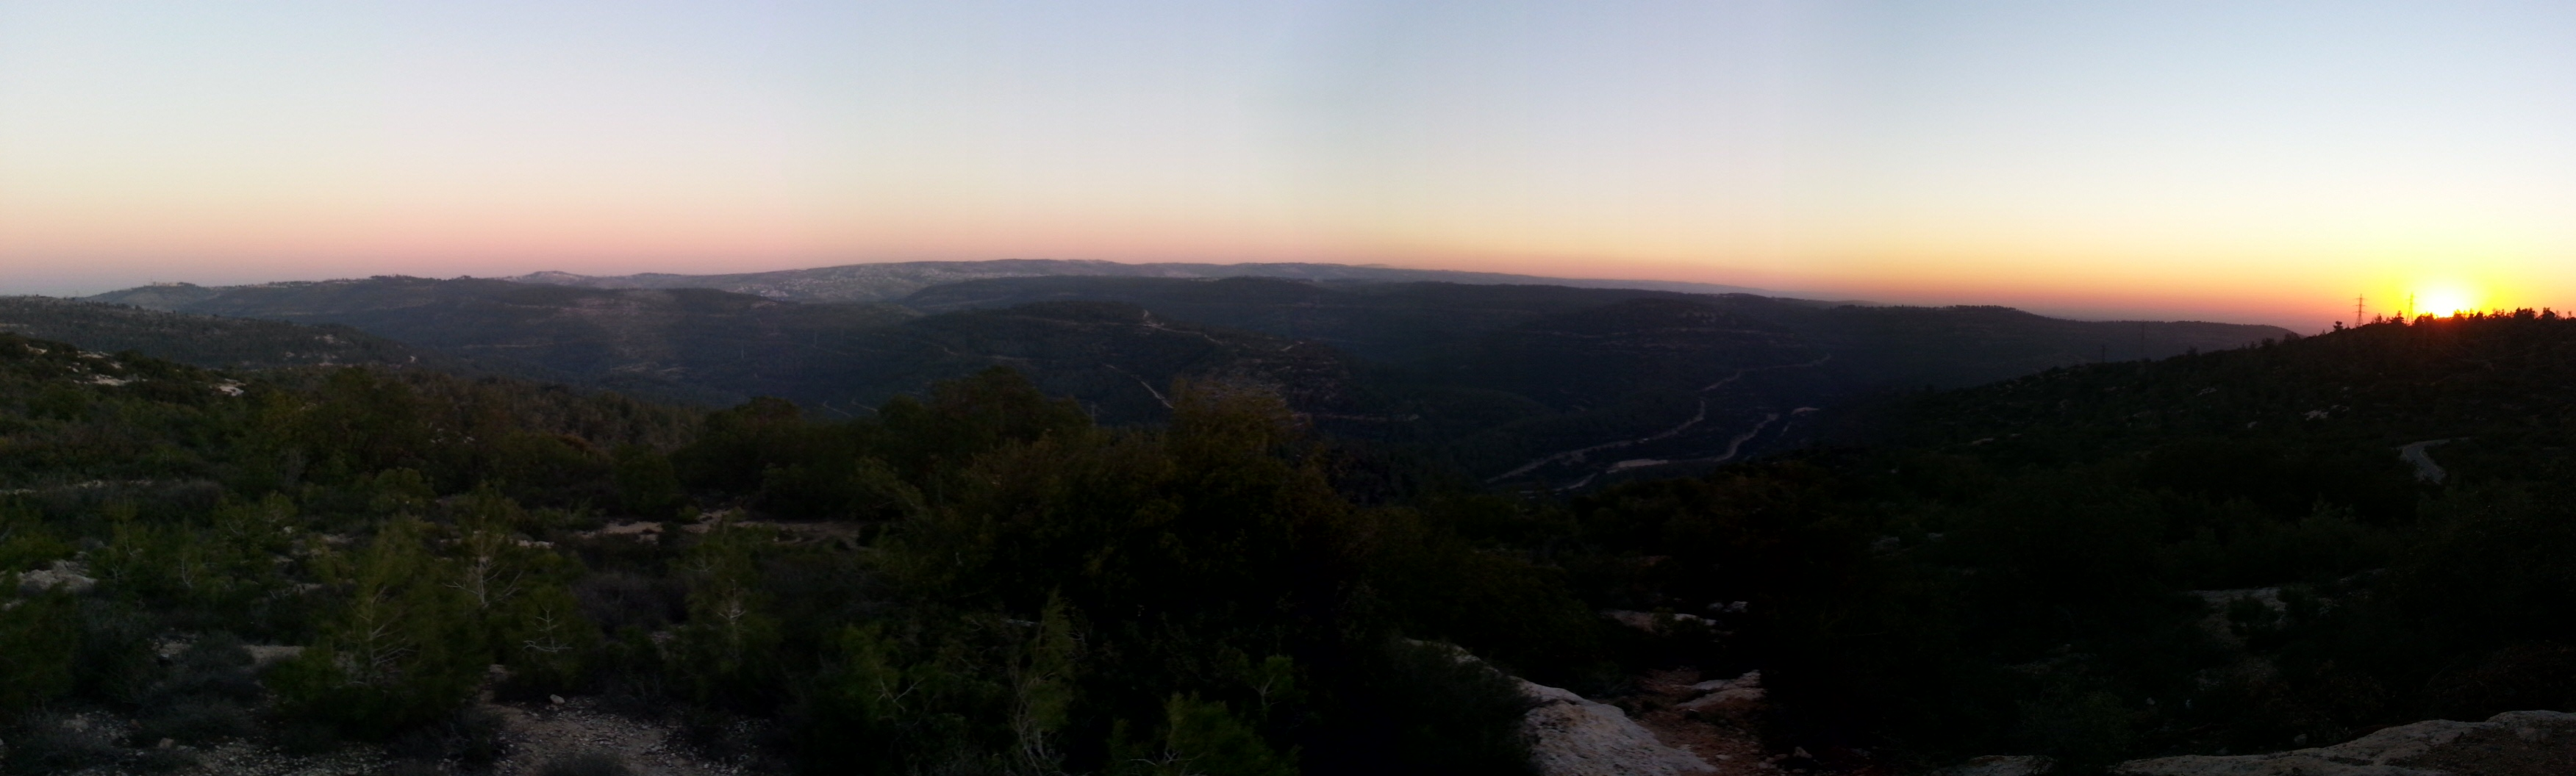 Sunset over Nachal Soreq and the Judean Mountains from the Pilots' Mountain lookout